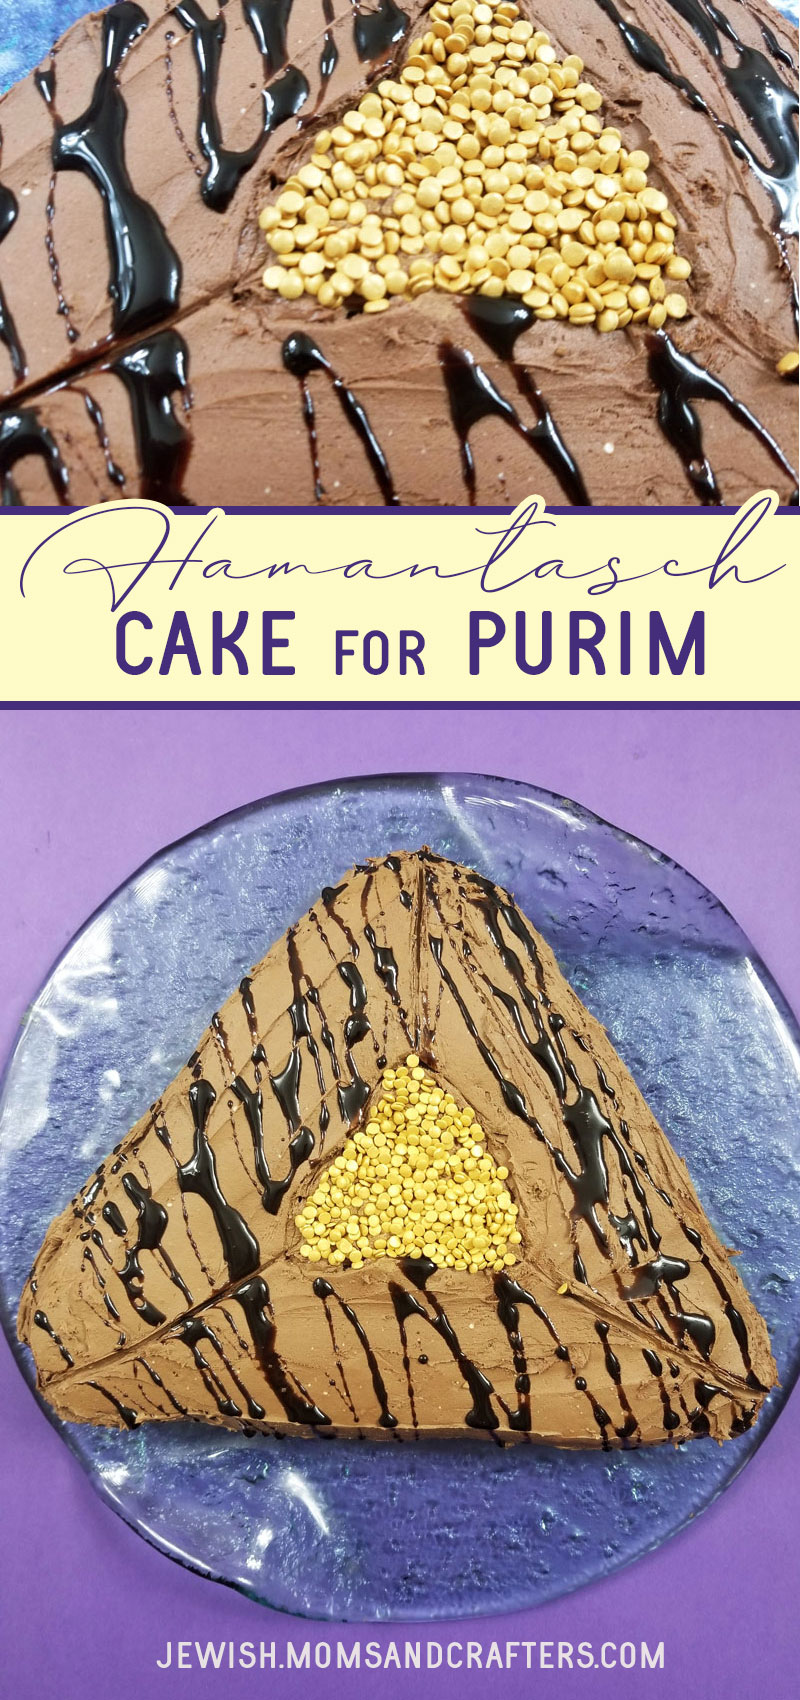 Click to make this adorable and insanely easy purim cake -one of my favorite Purim ideas that's a fun alternative to hamantaschen (and easier) and that's a great Purim party food!